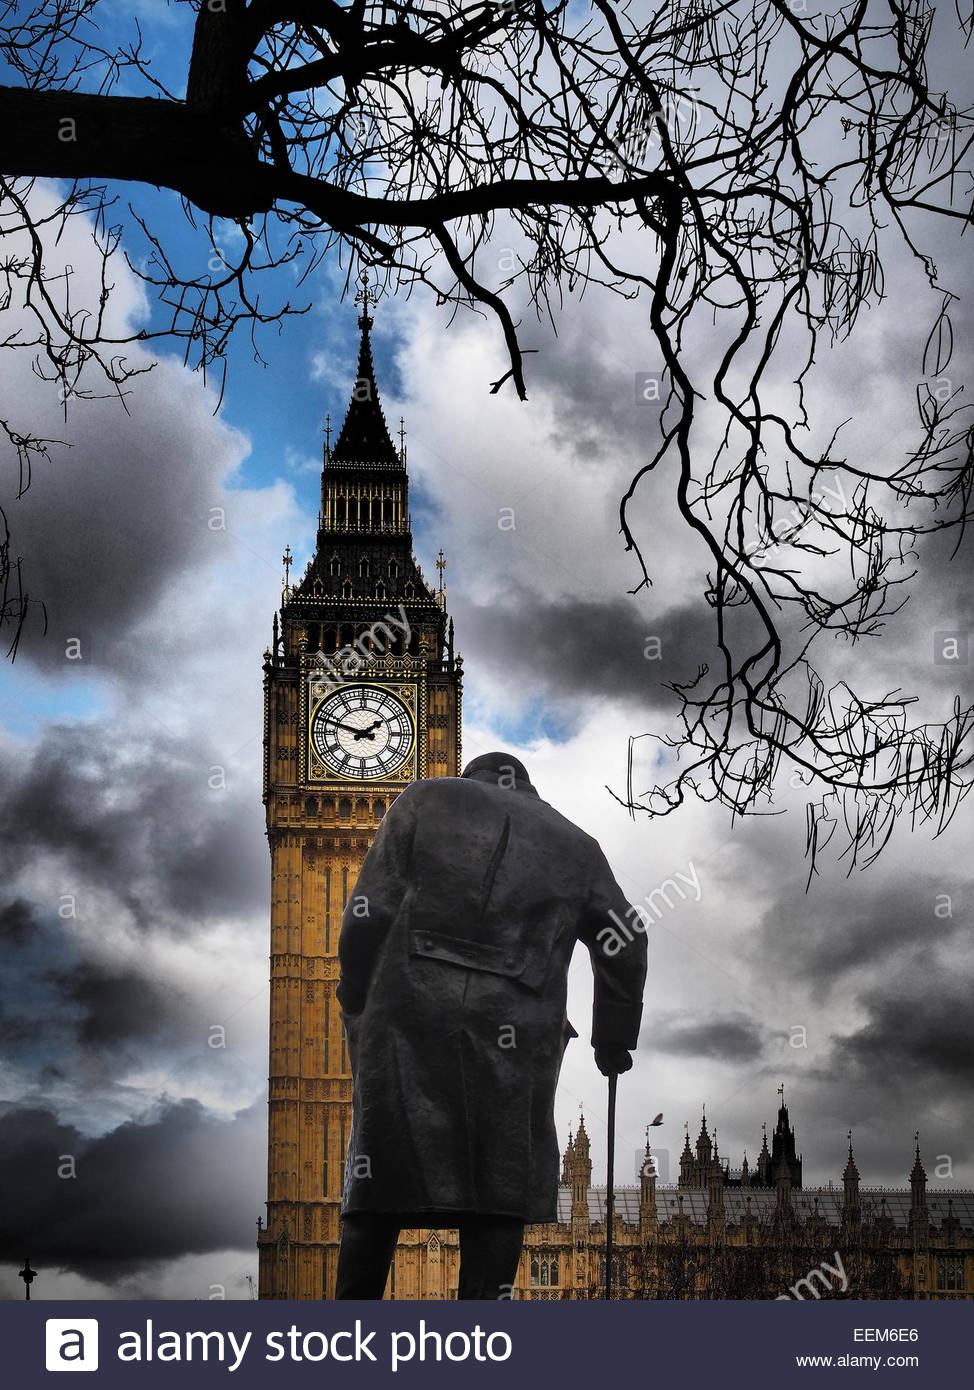 UK, England, London, View of Big Ben and Churchill statue - Stock Image